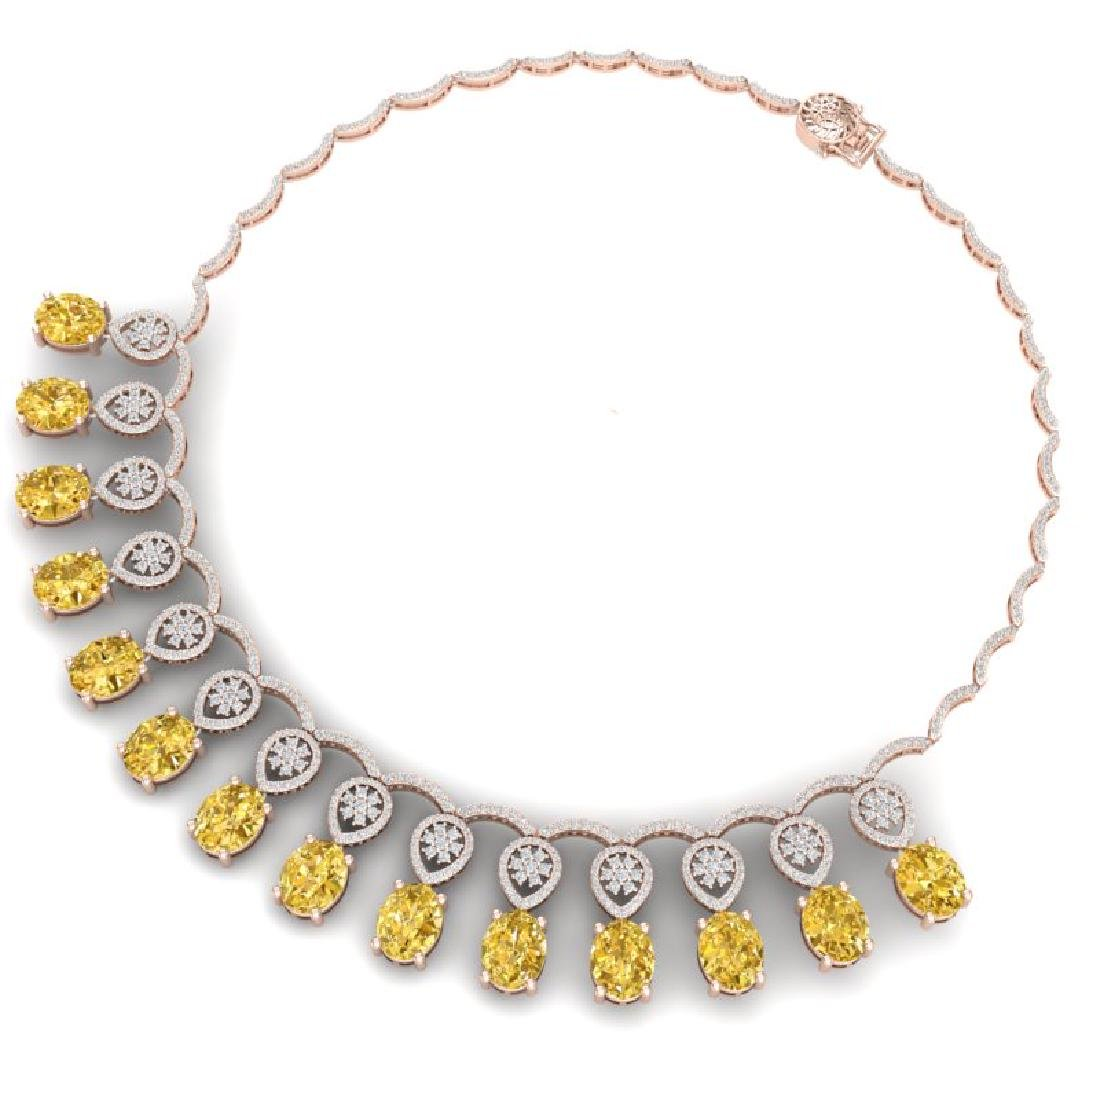 51.57 CTW Royalty Canary Citrine & VS Diamond Necklace - 3